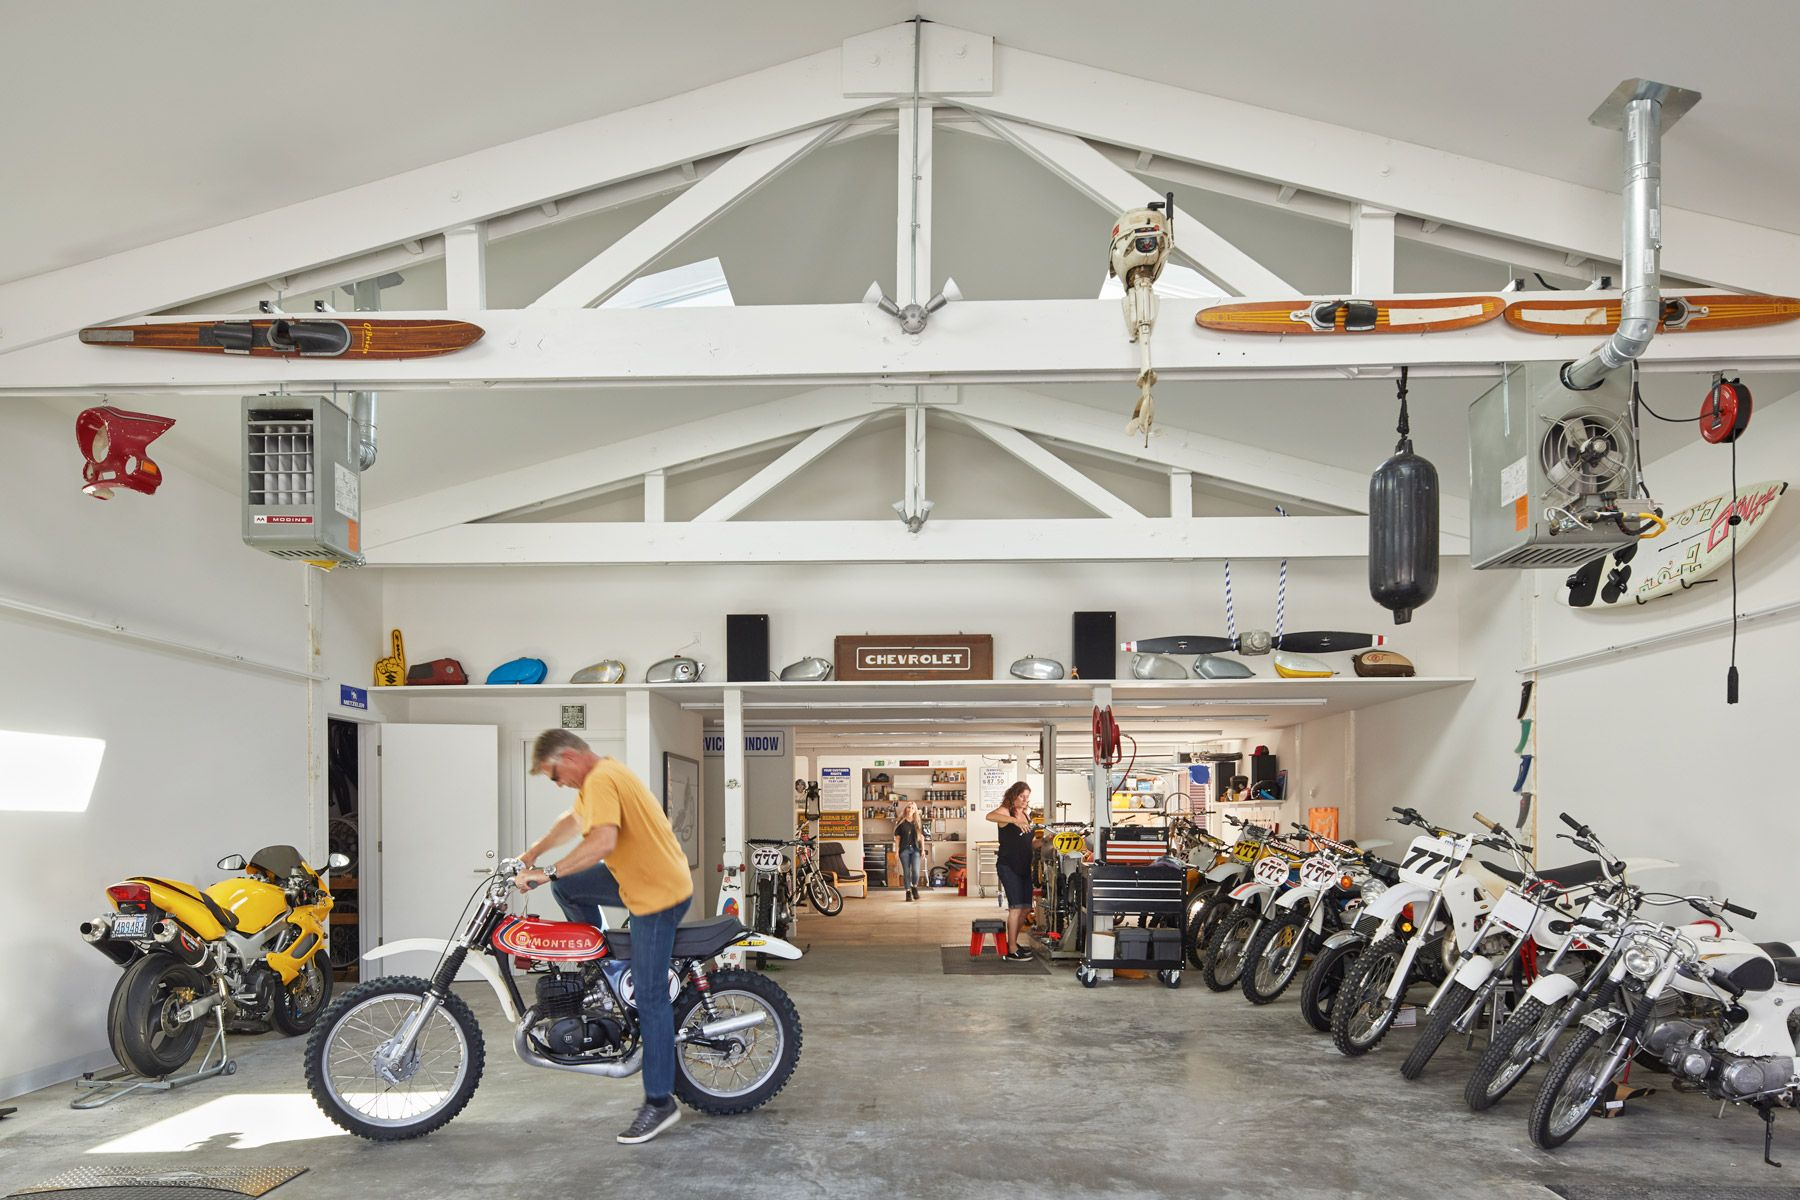 garage, dirtbike, seattle architect, dow built